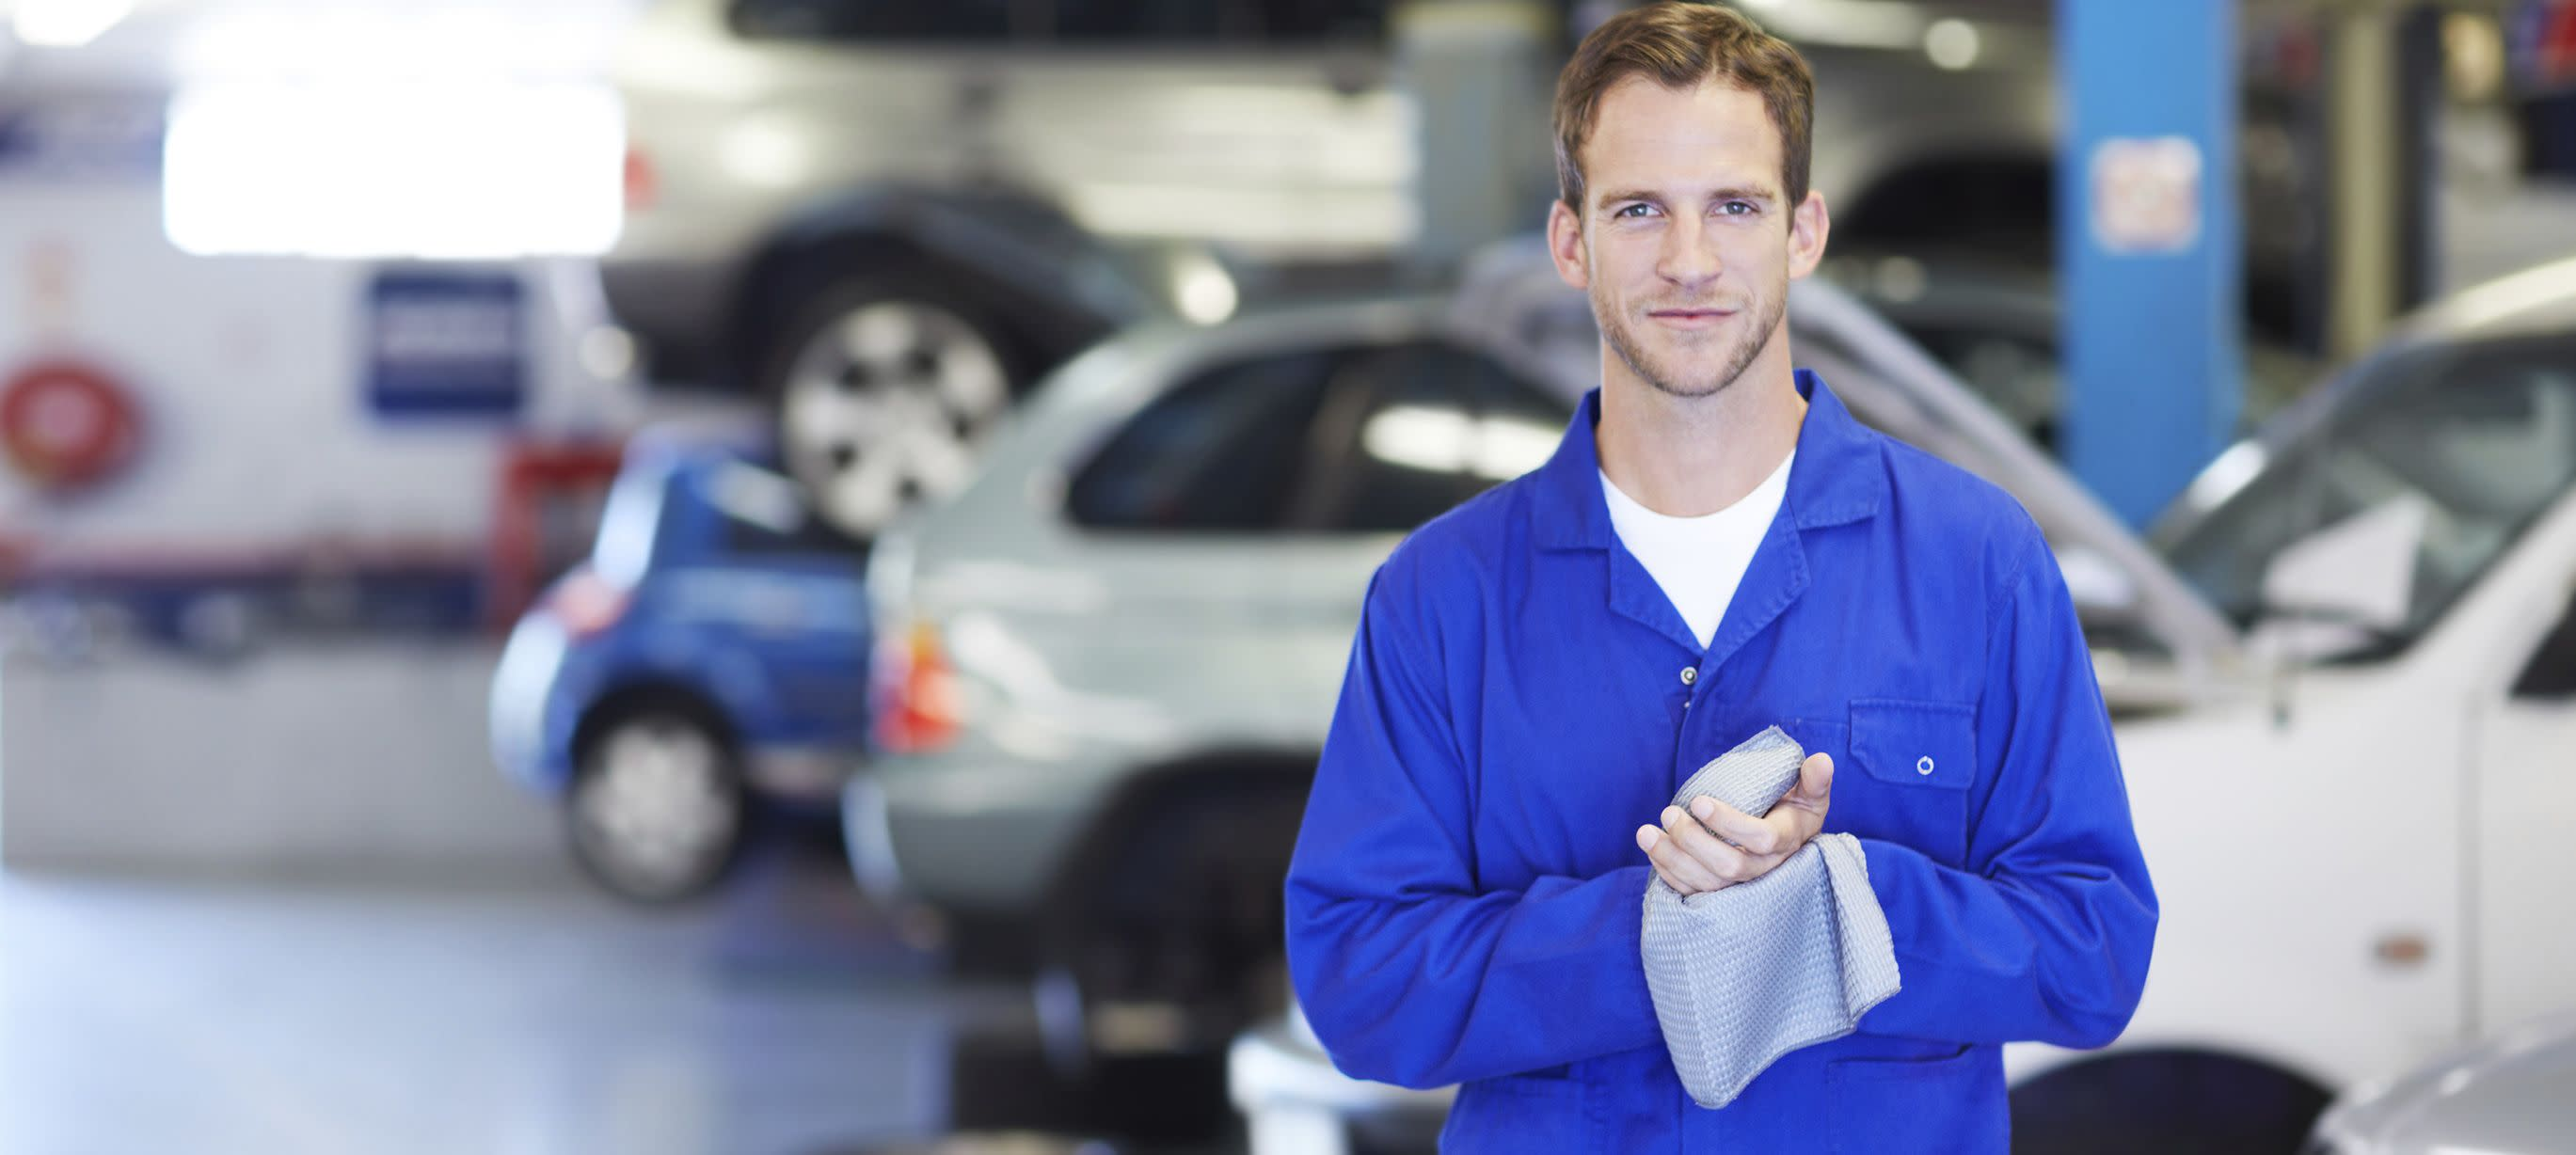 Auto Glass Repair near West Chester, PA